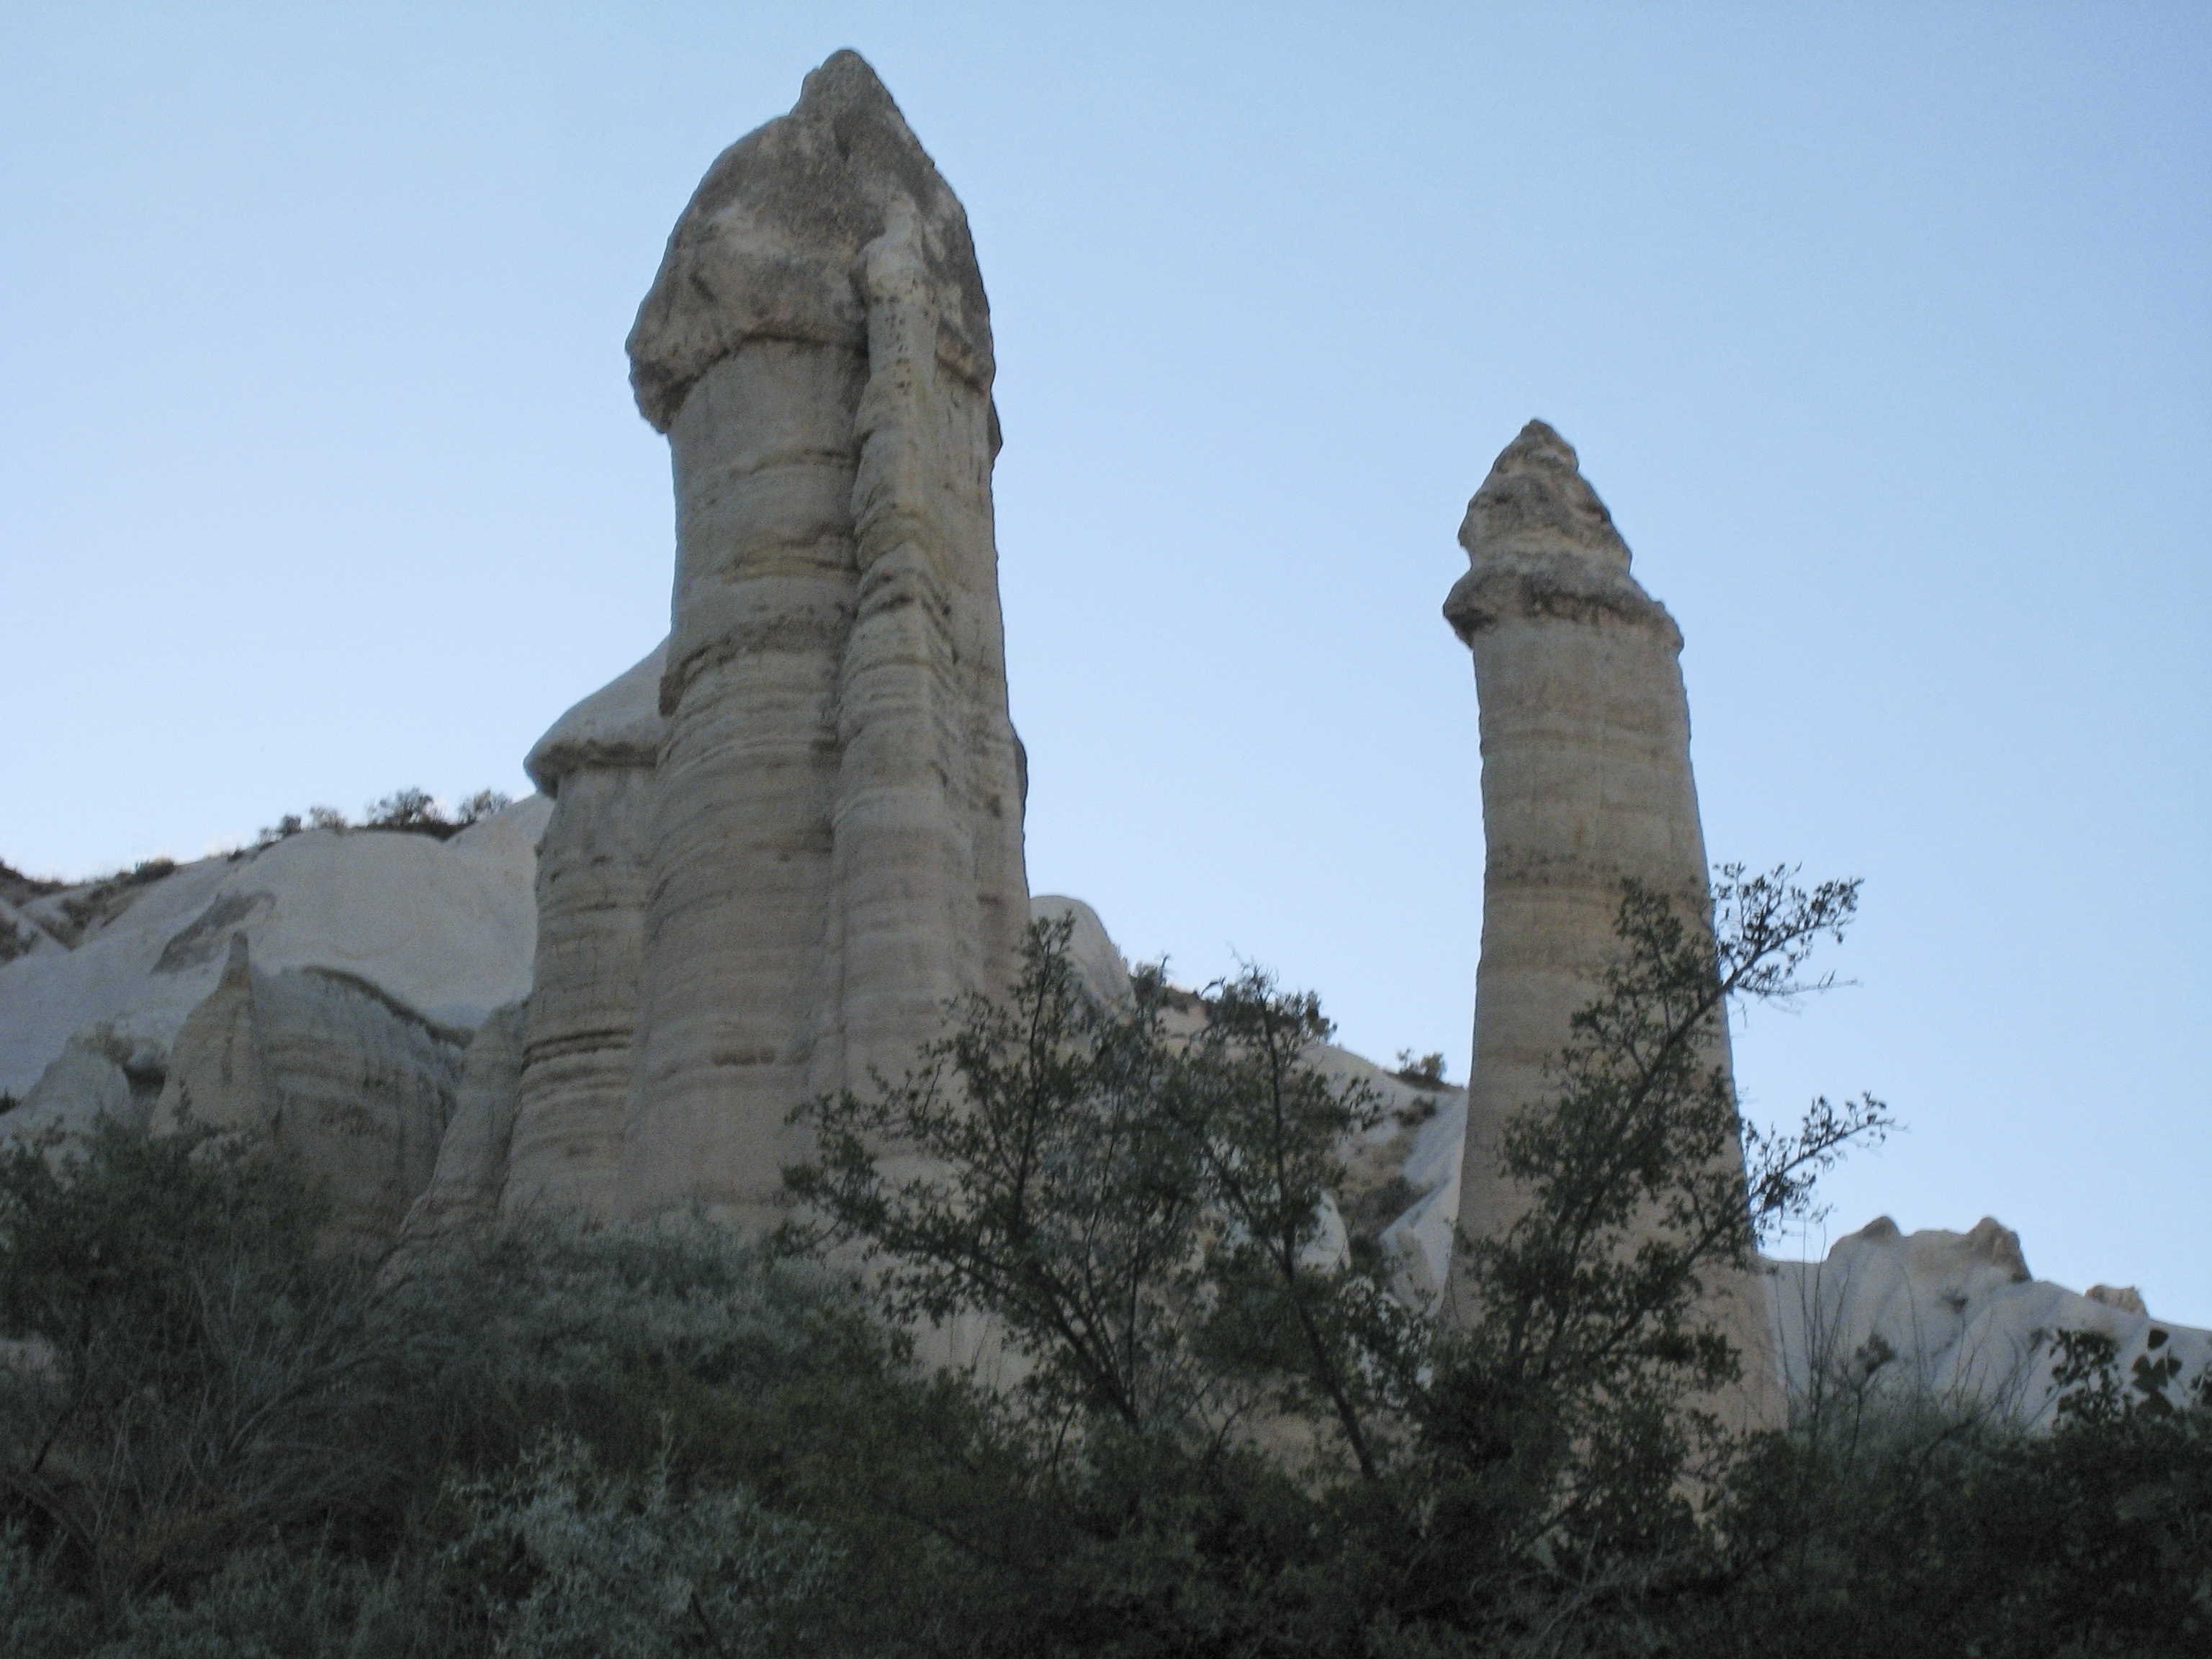 Fairy chimney rock formations, Goreme, Cappadocia Turkey 12.jpg - Goreme, Cappadocia, Turkey